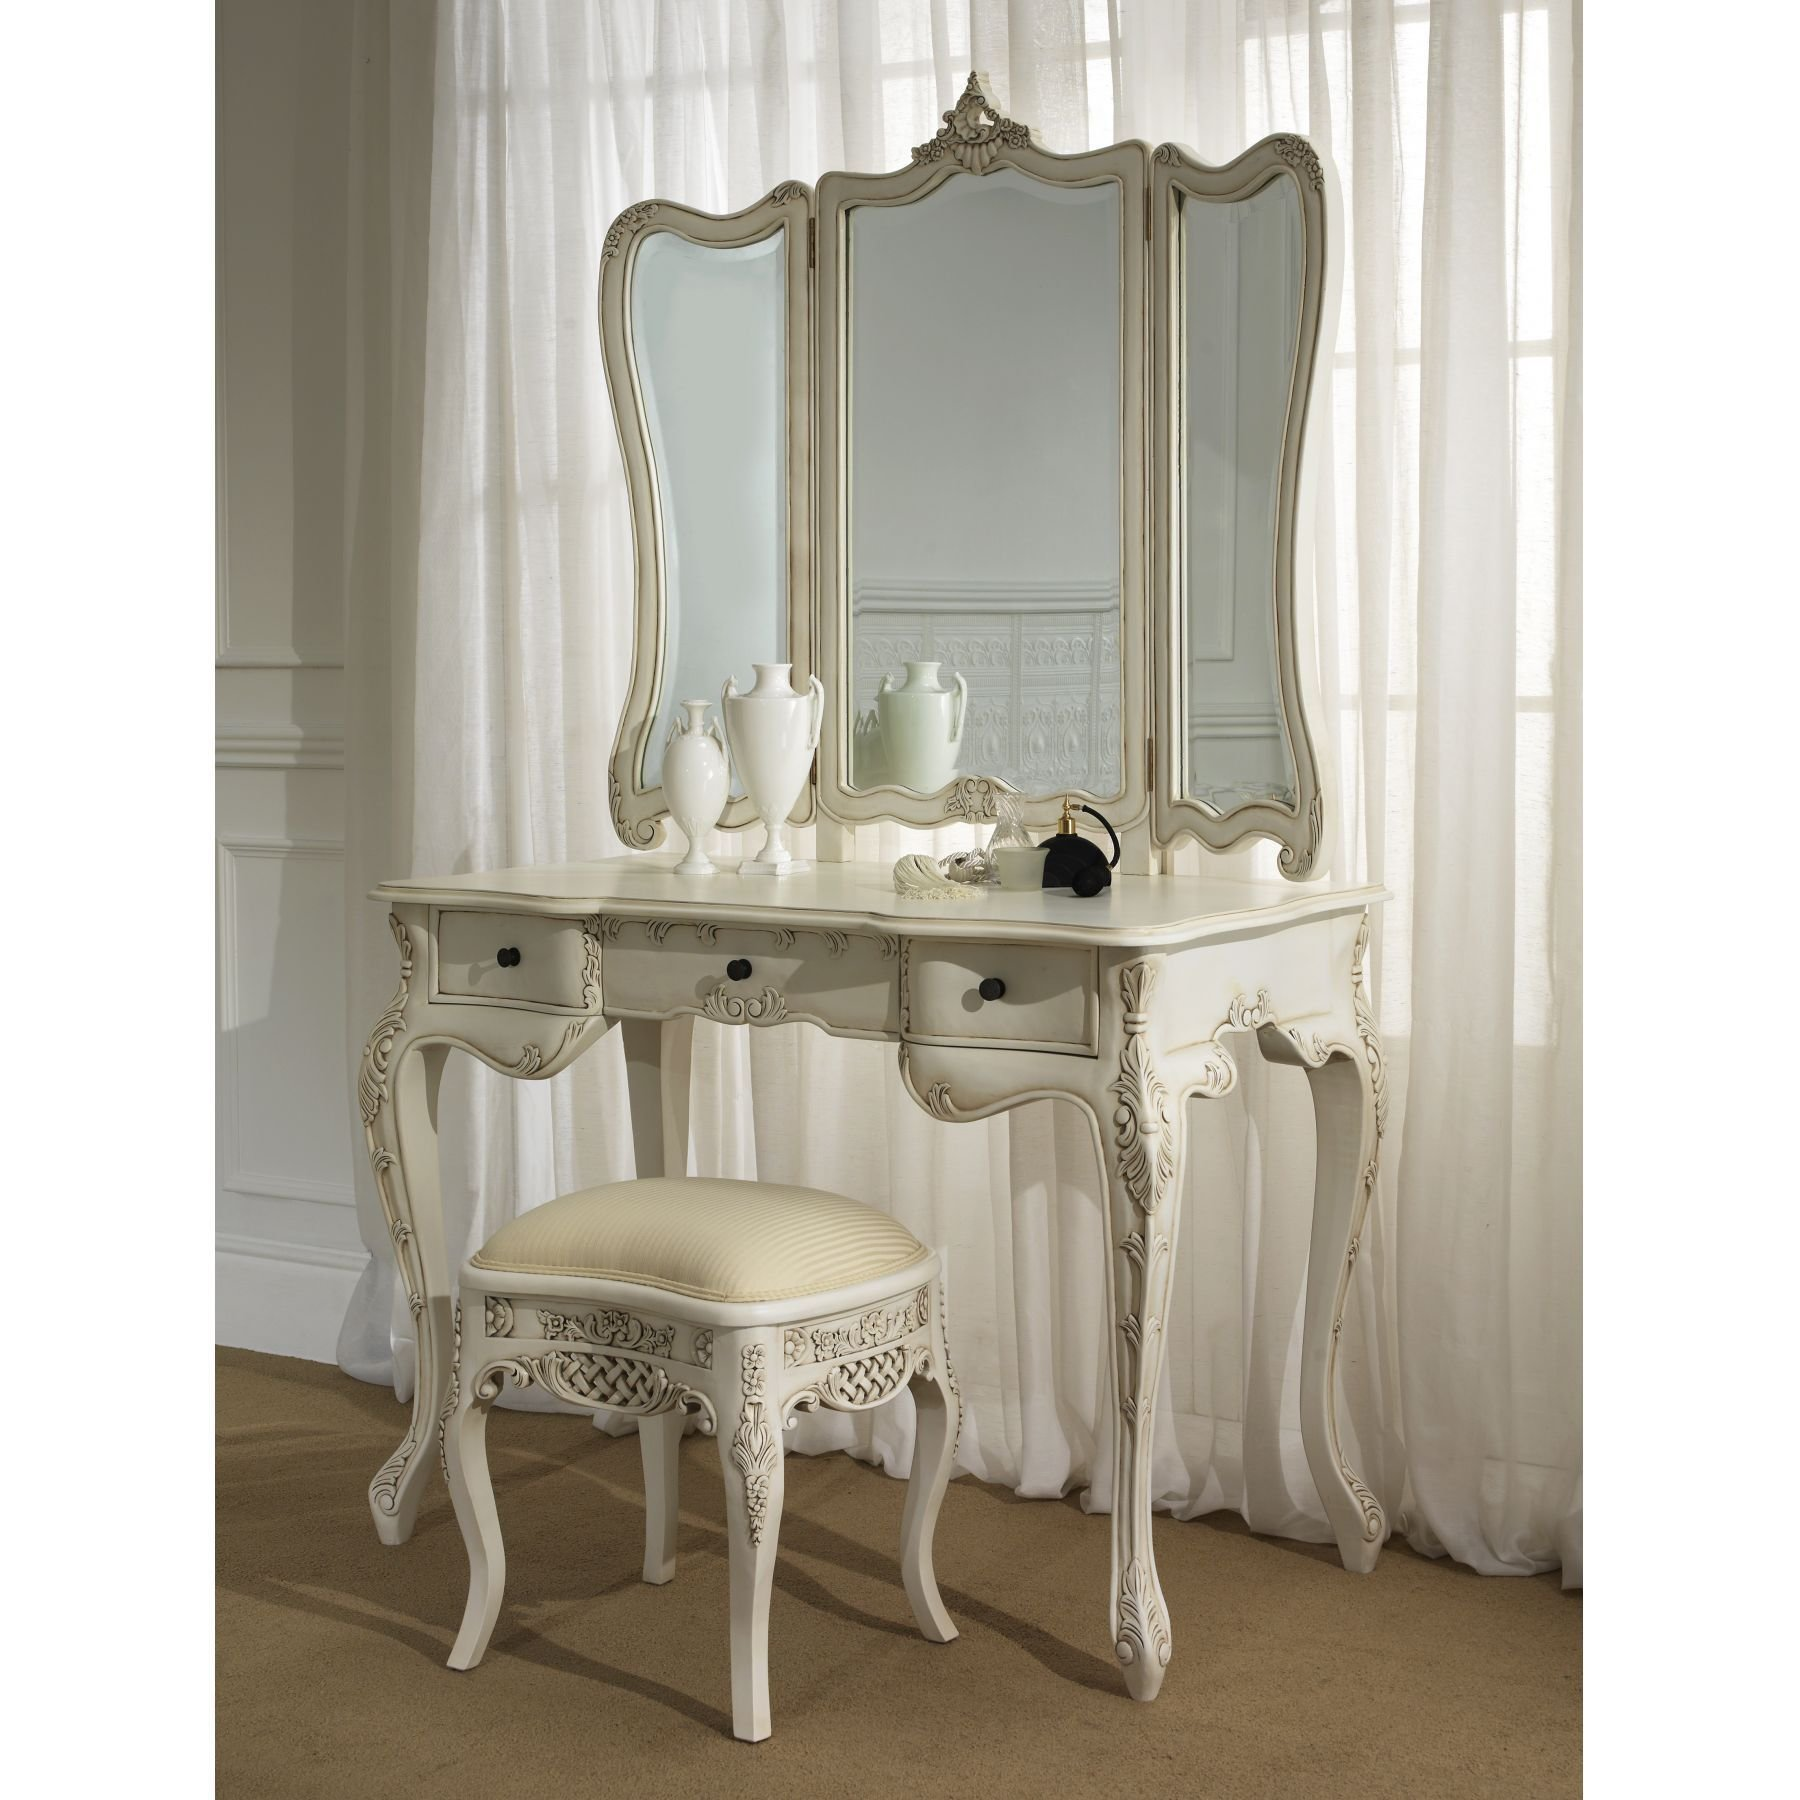 Best Brilliant French Antique Bedroom Furniture 1800 X 1800 With Pictures